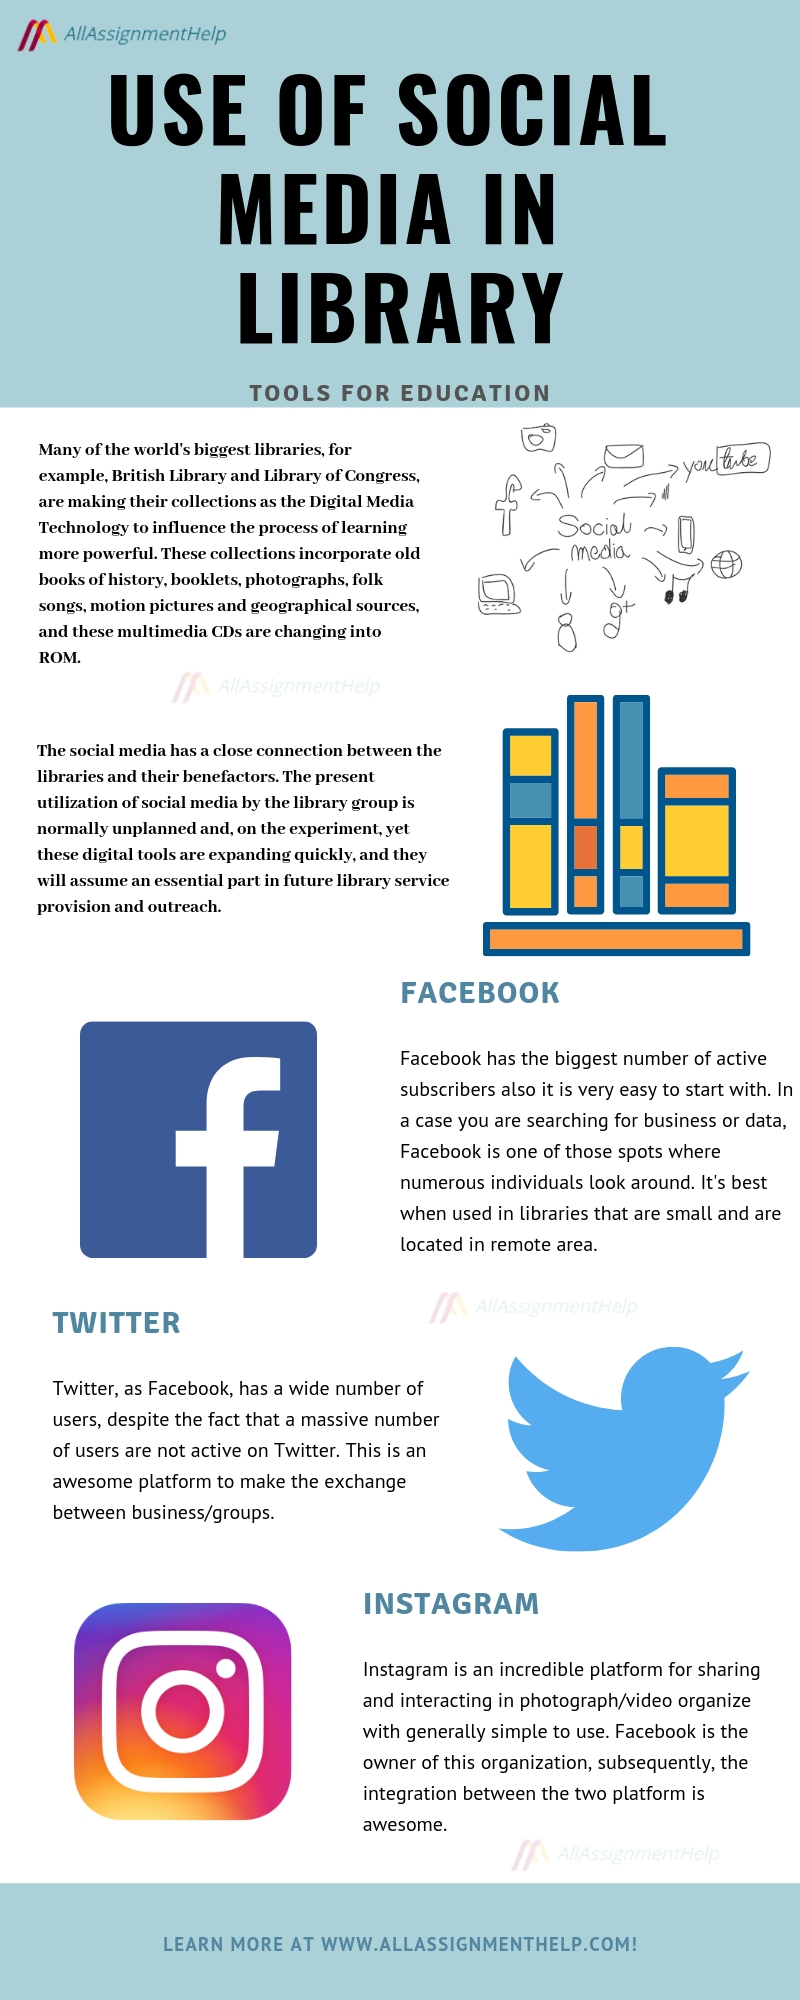 1USE OF SOCIAL MEDIA IN LIBRARY